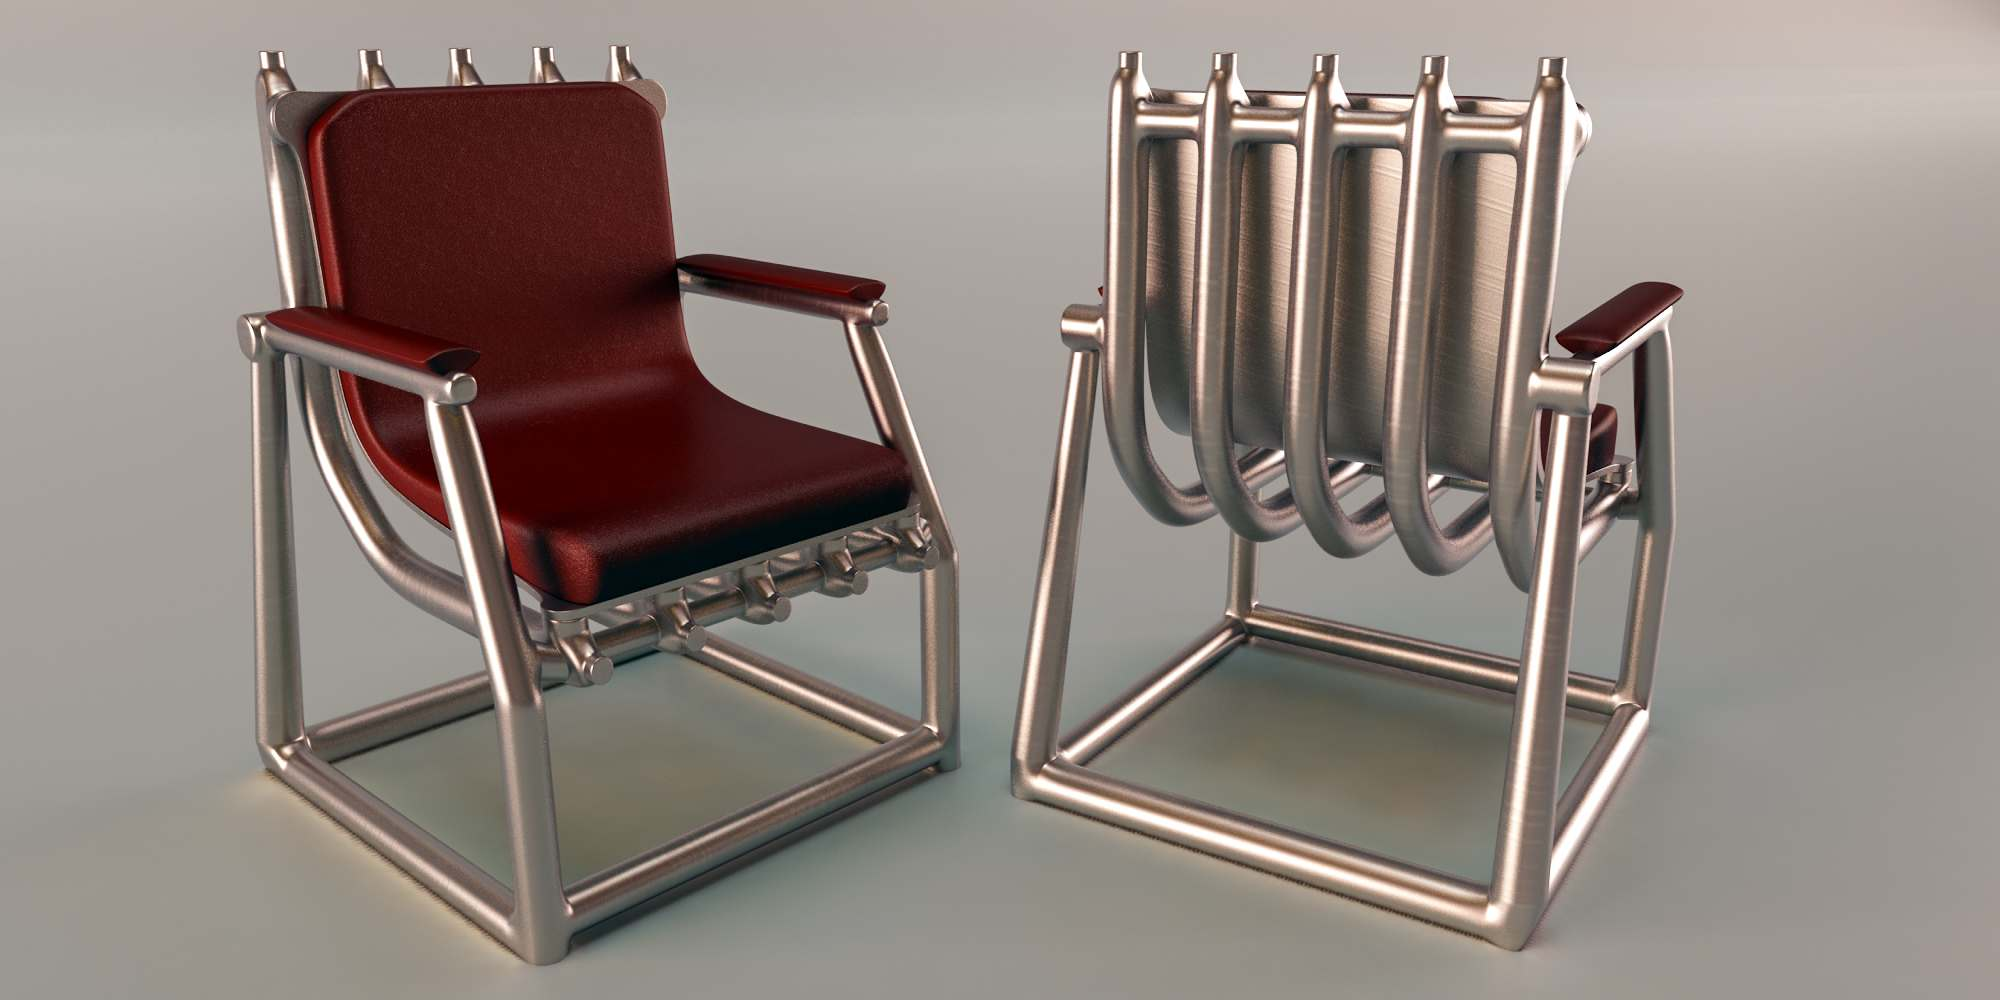 industrialdesign2 Industrial Design Modeled and Rendered in Modo by Mike Grauer